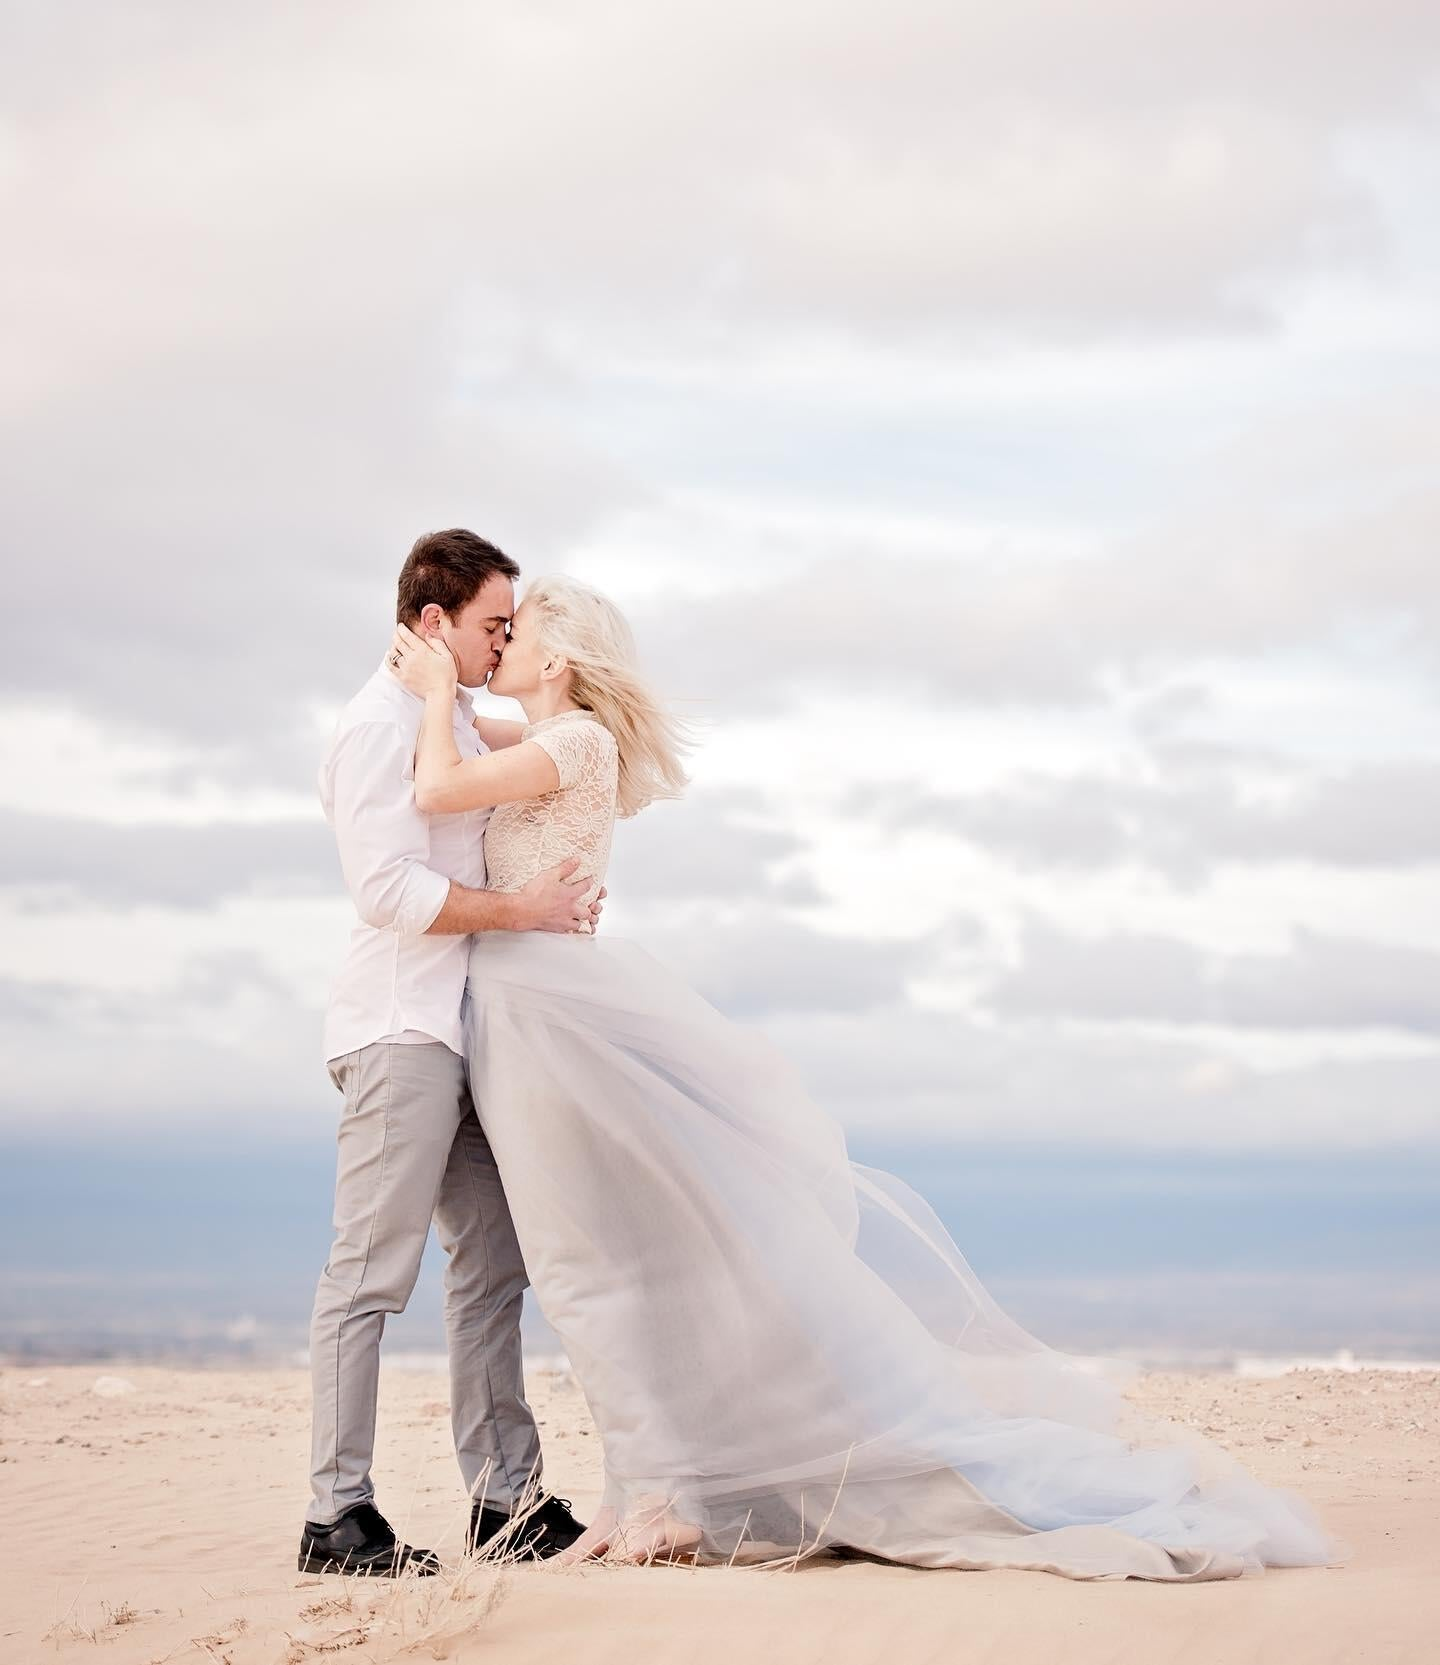 A bride and groom's first kiss moment